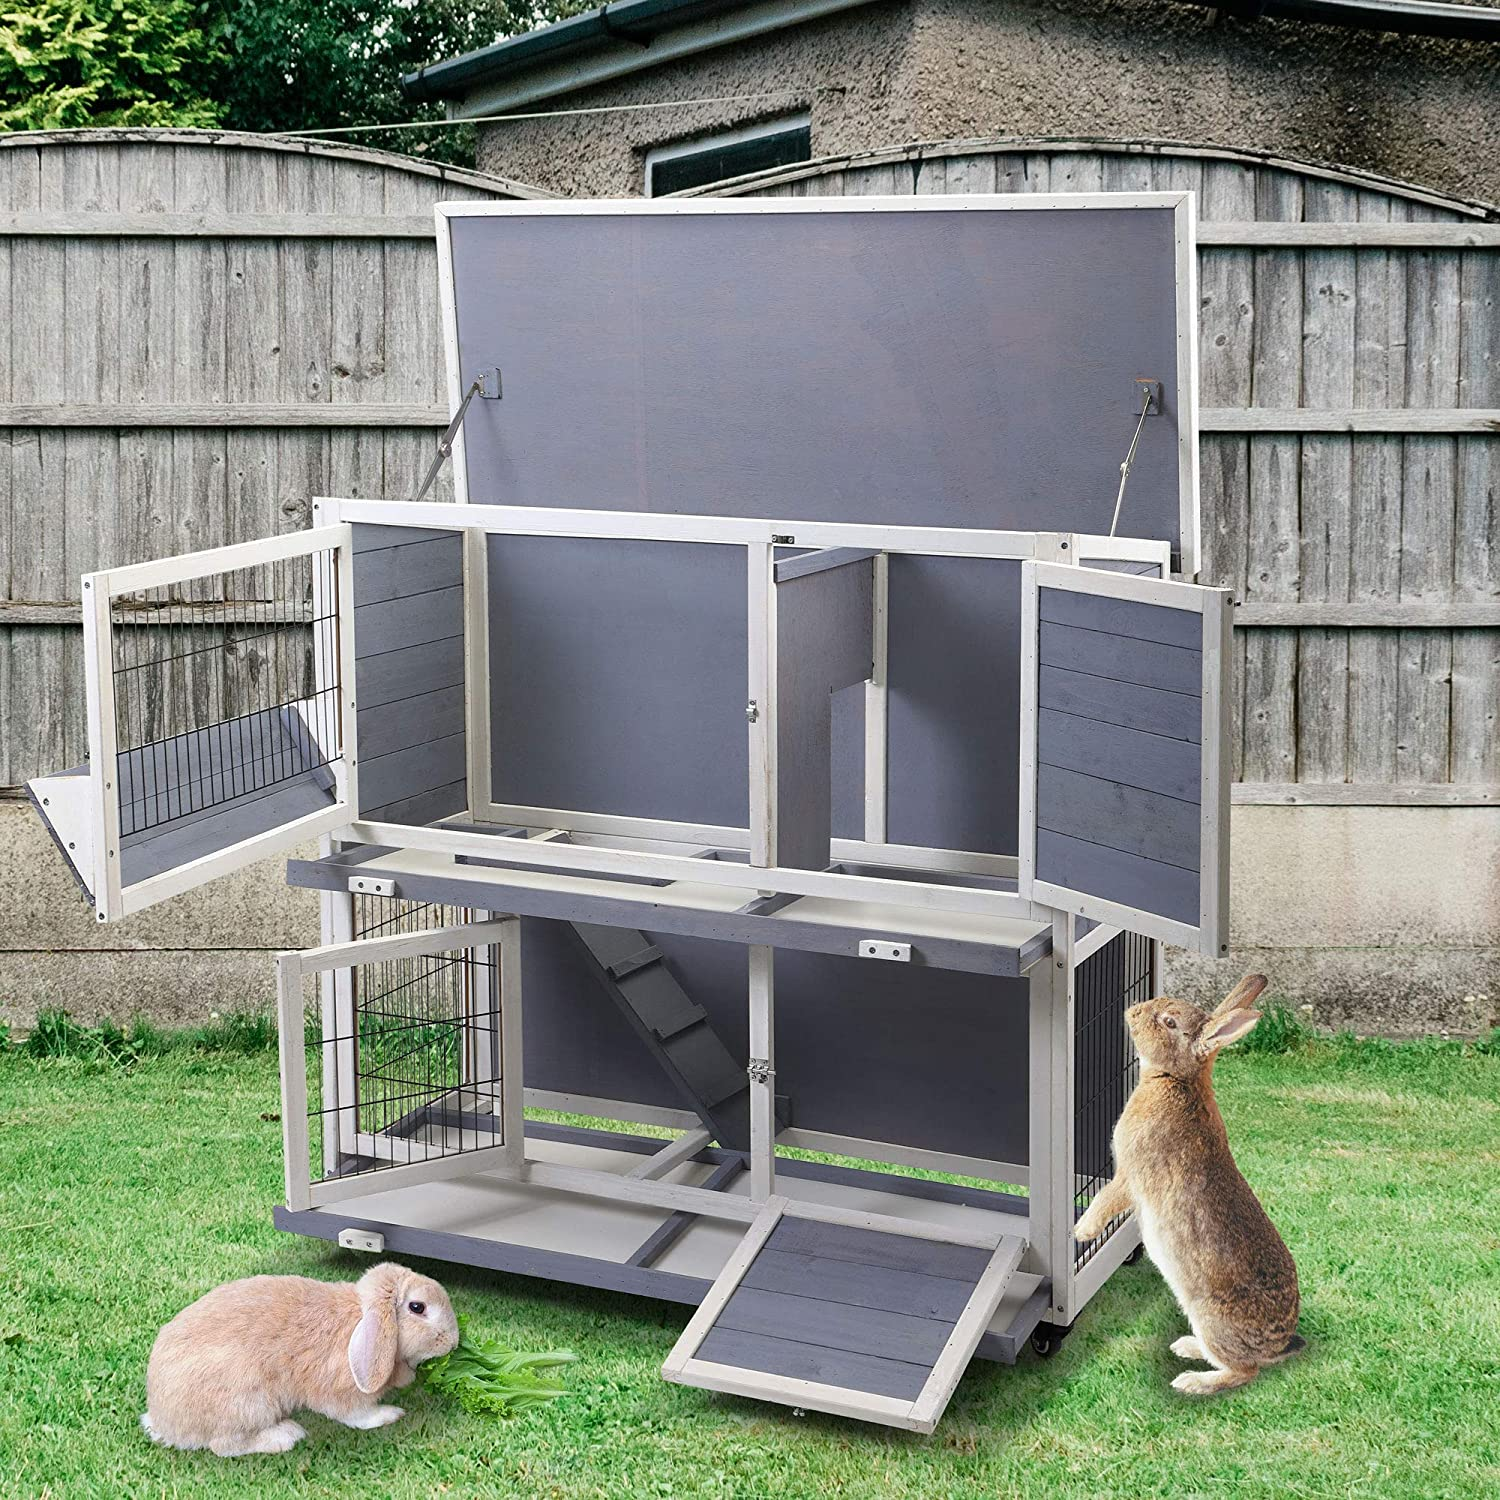 Sandinrayli Wood Double-Tier Rabbit Hutch Pet Cage Bunny House with Flip-up Roof Indoor /& Outdoor Use